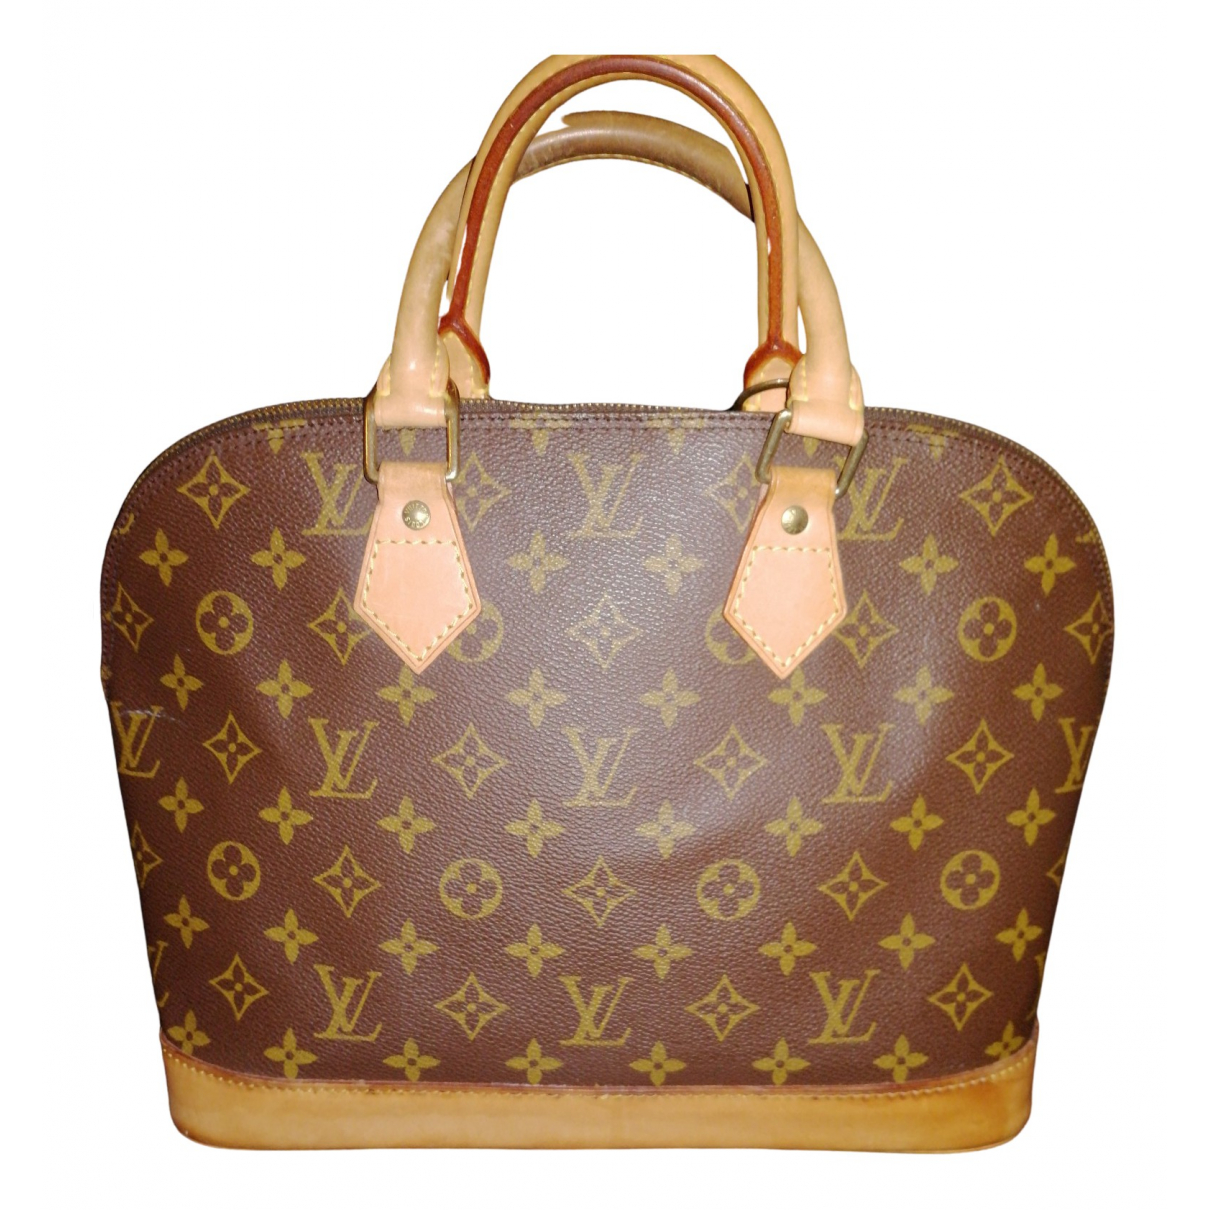 Louis Vuitton Alma Brown Cloth handbag for Women N